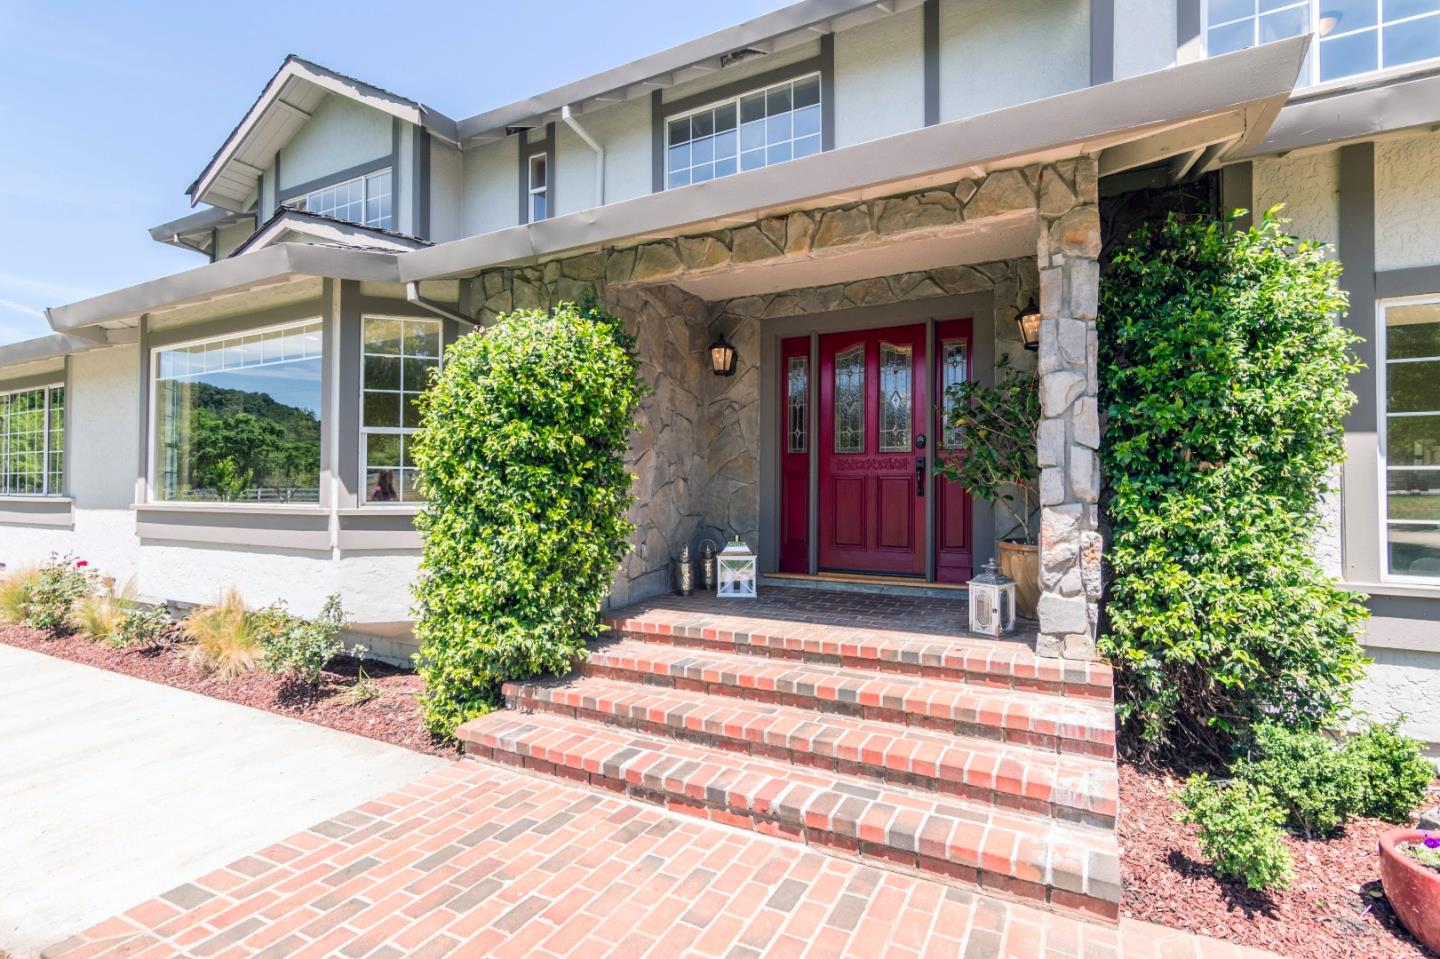 Additional photo for property listing at 13420 Sycamore Drive 13420 Sycamore Drive Morgan Hill, Калифорния 95037 Соединенные Штаты